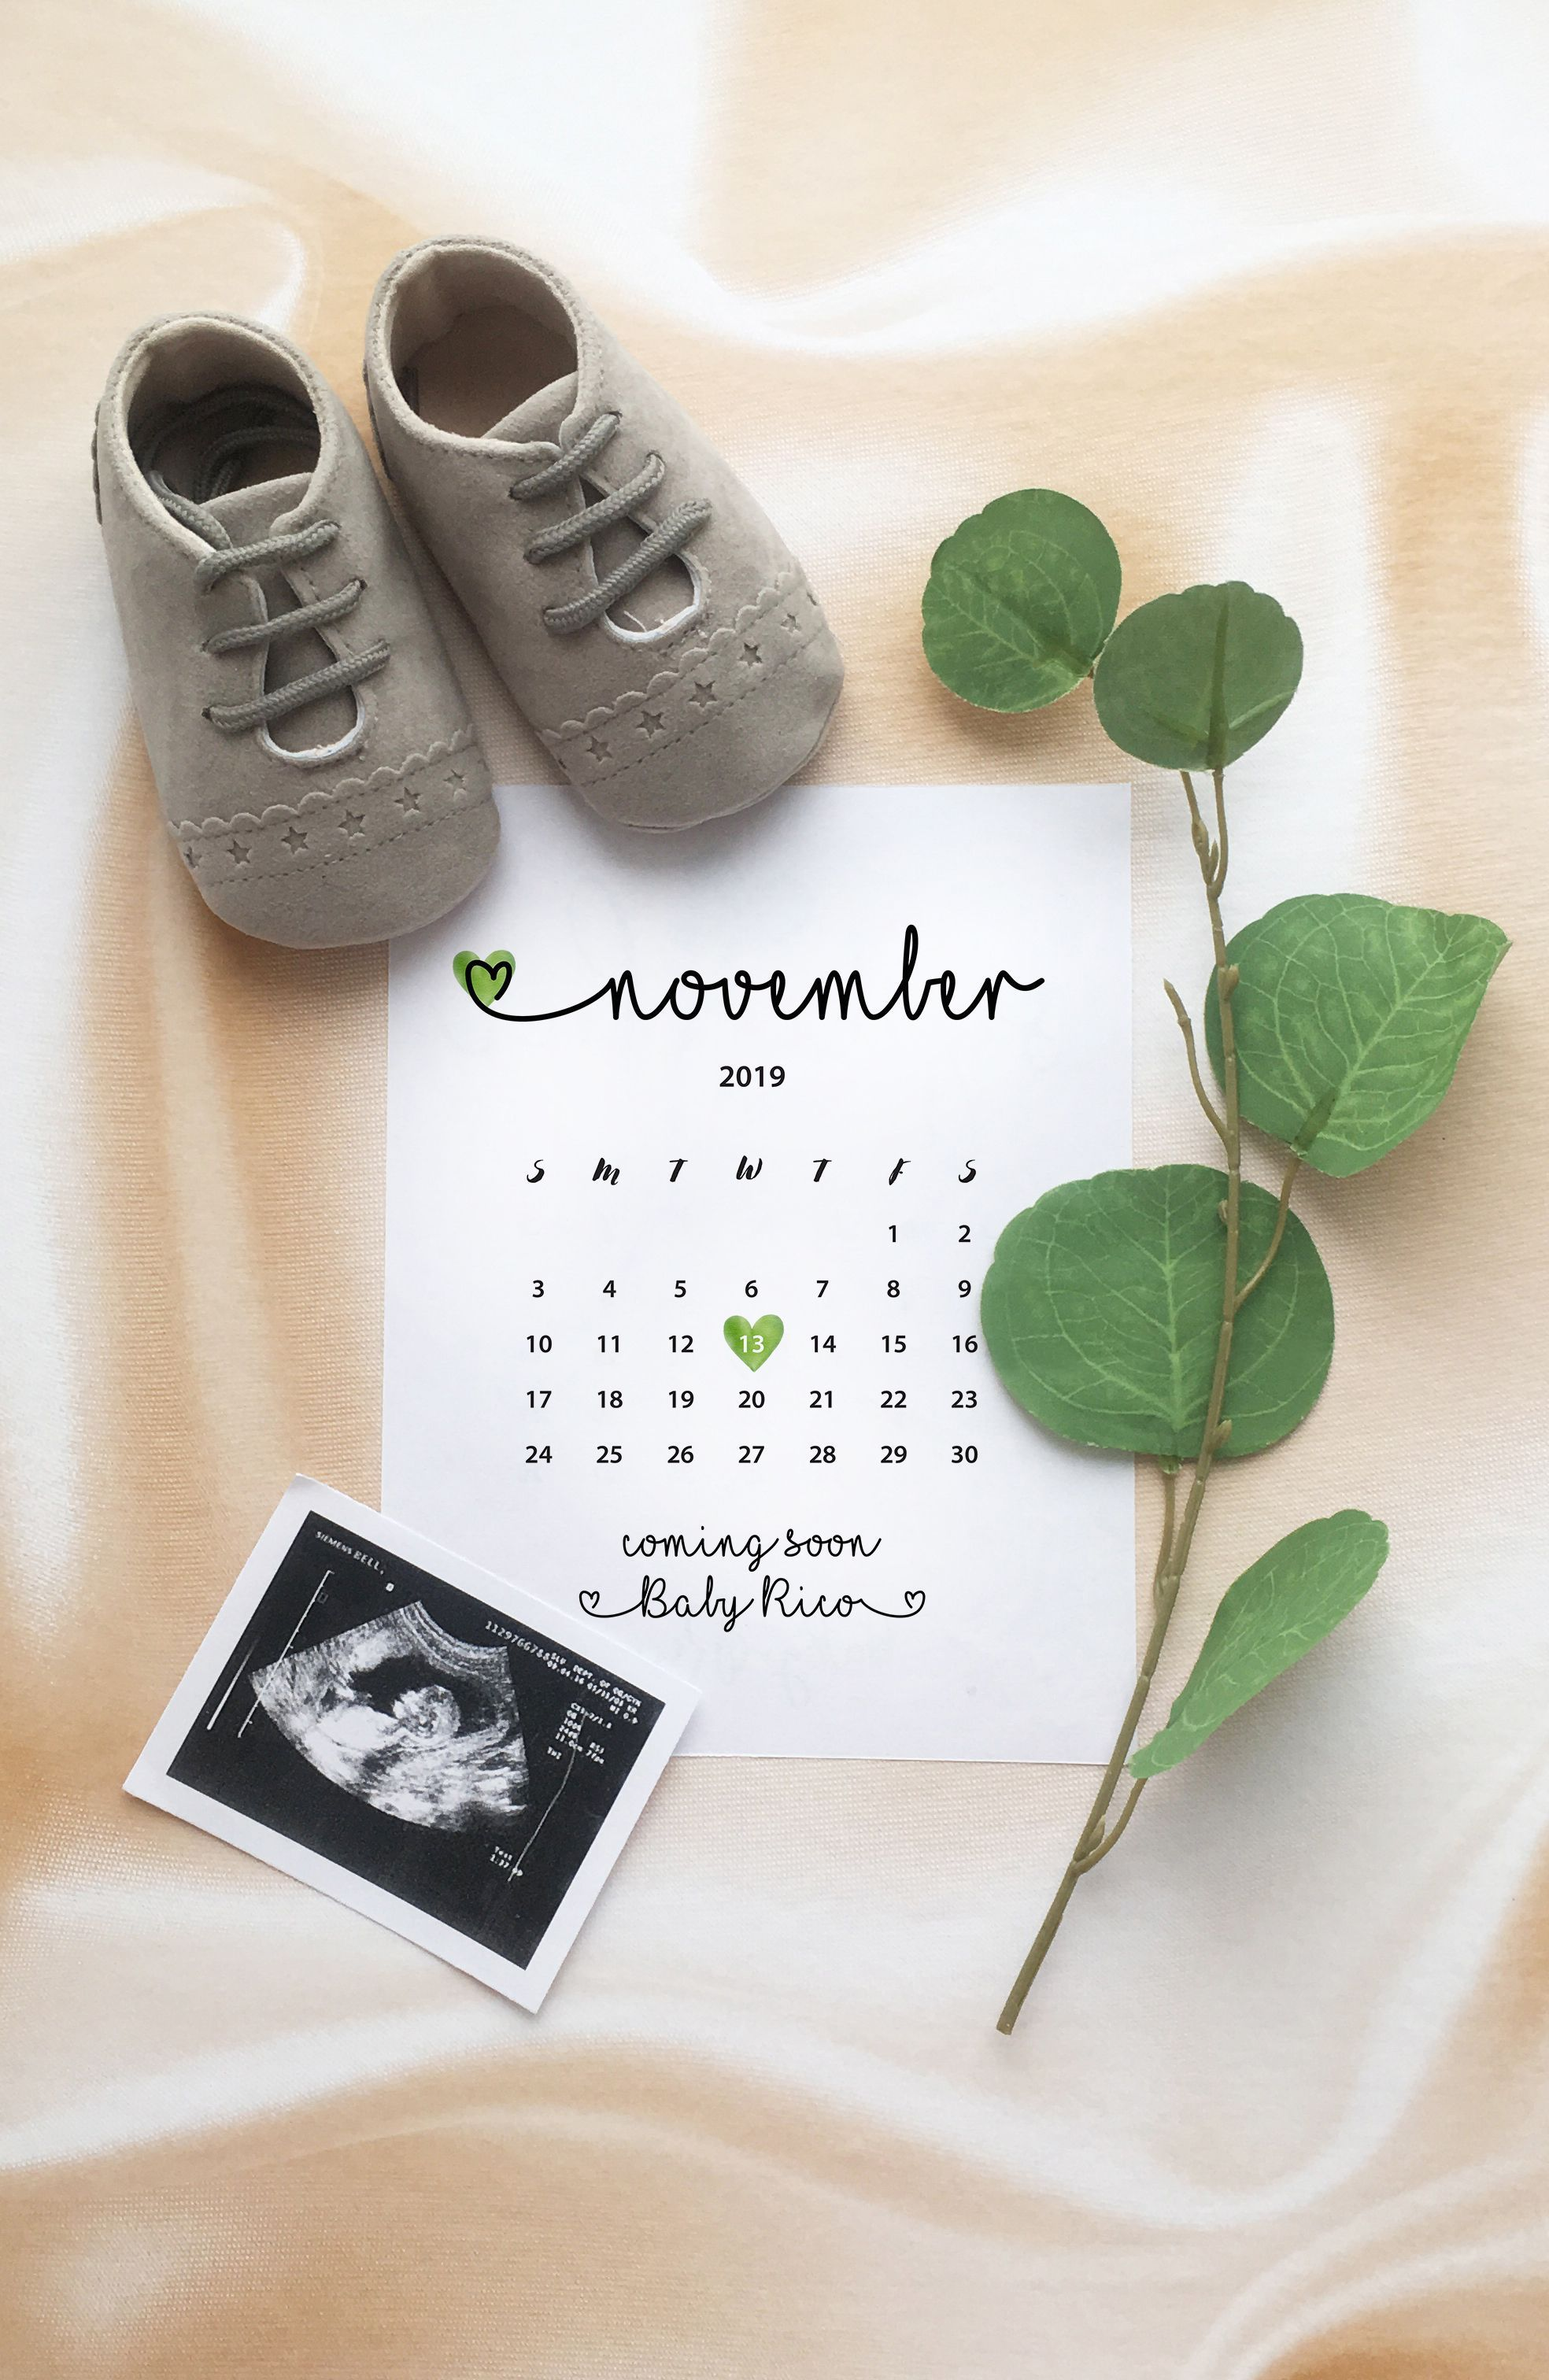 Best Images january 2020 calendar baby Thoughts, 2020